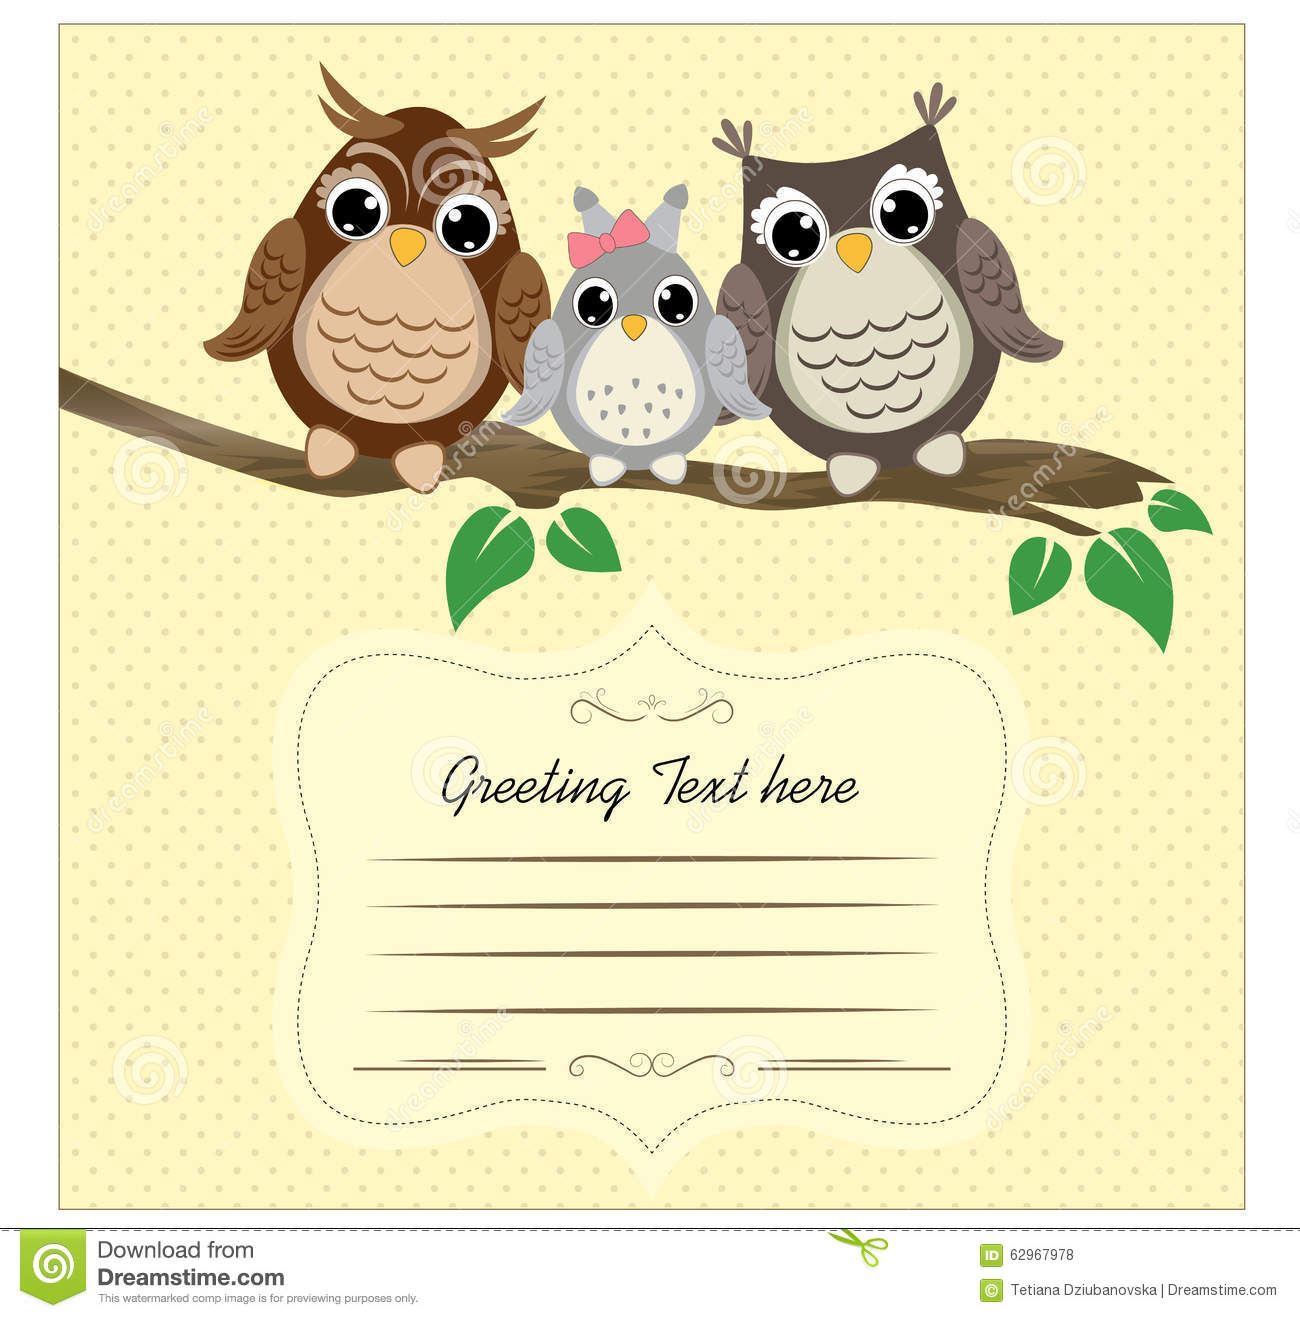 Clipart Book Cover Design : Сute owls on a tree branch with space for text stock